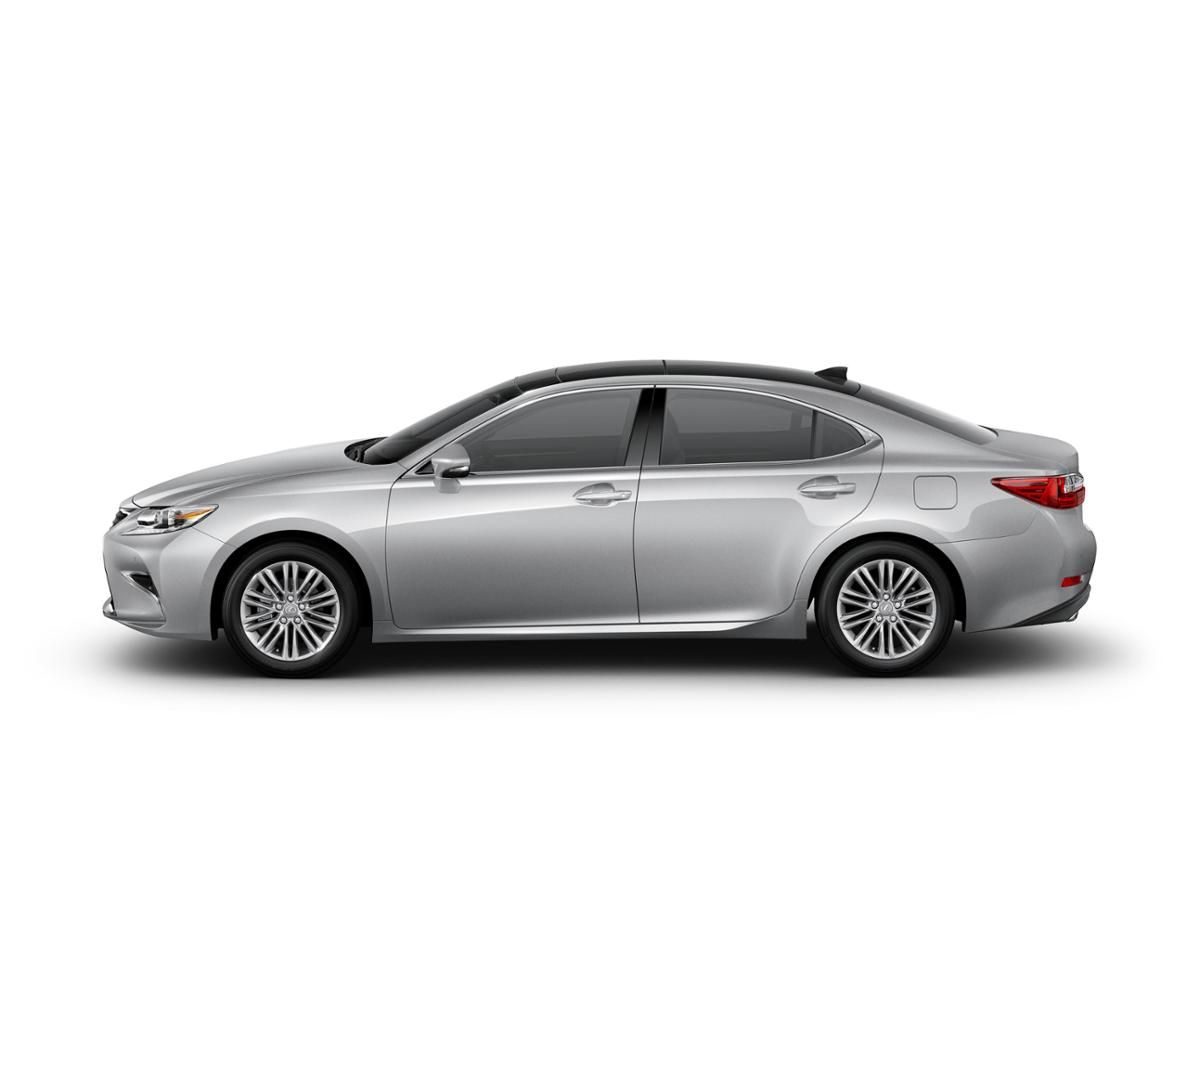 2017 Lexus ES 350 Vehicle Photo in Dallas, TX 75209